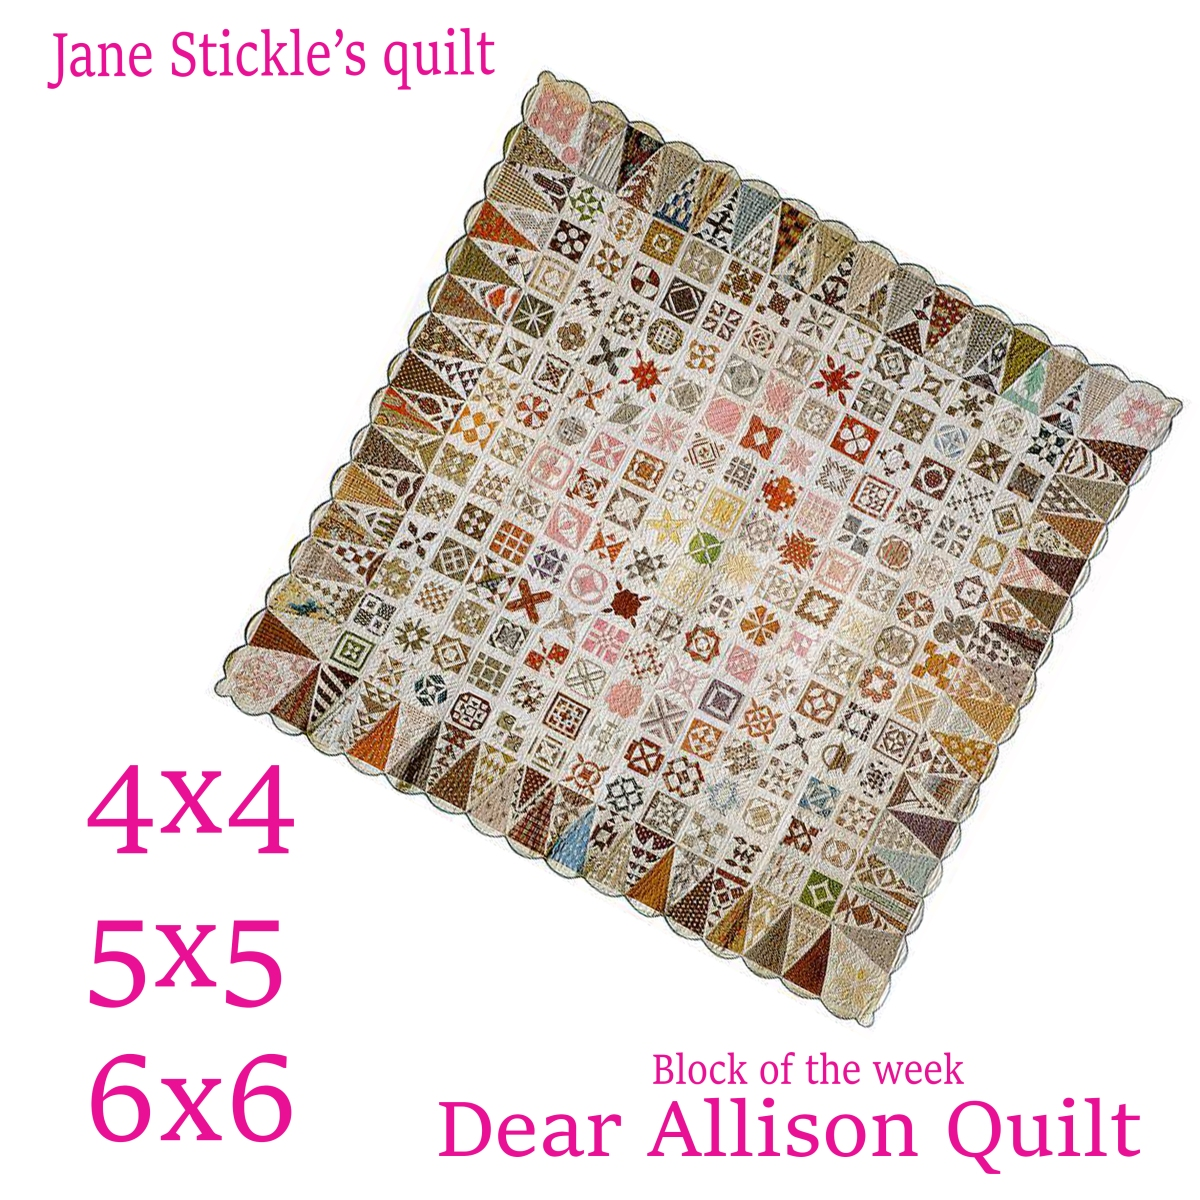 How to add the sashing, borders and binding to the Dear Allison Quilt.